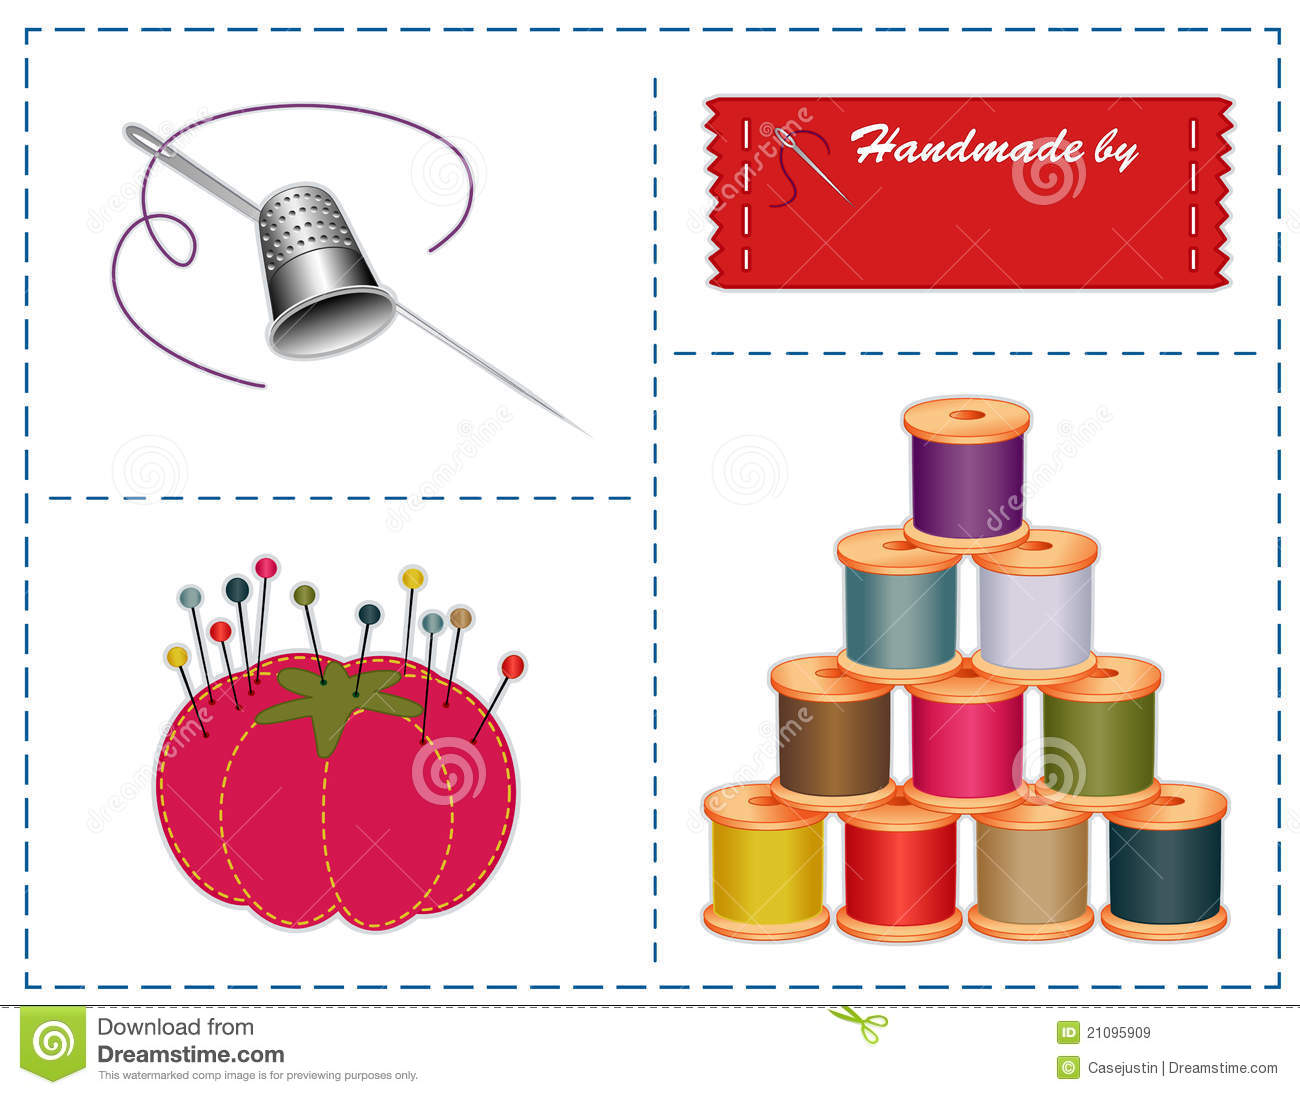 Diy Projects Sewing Crafts